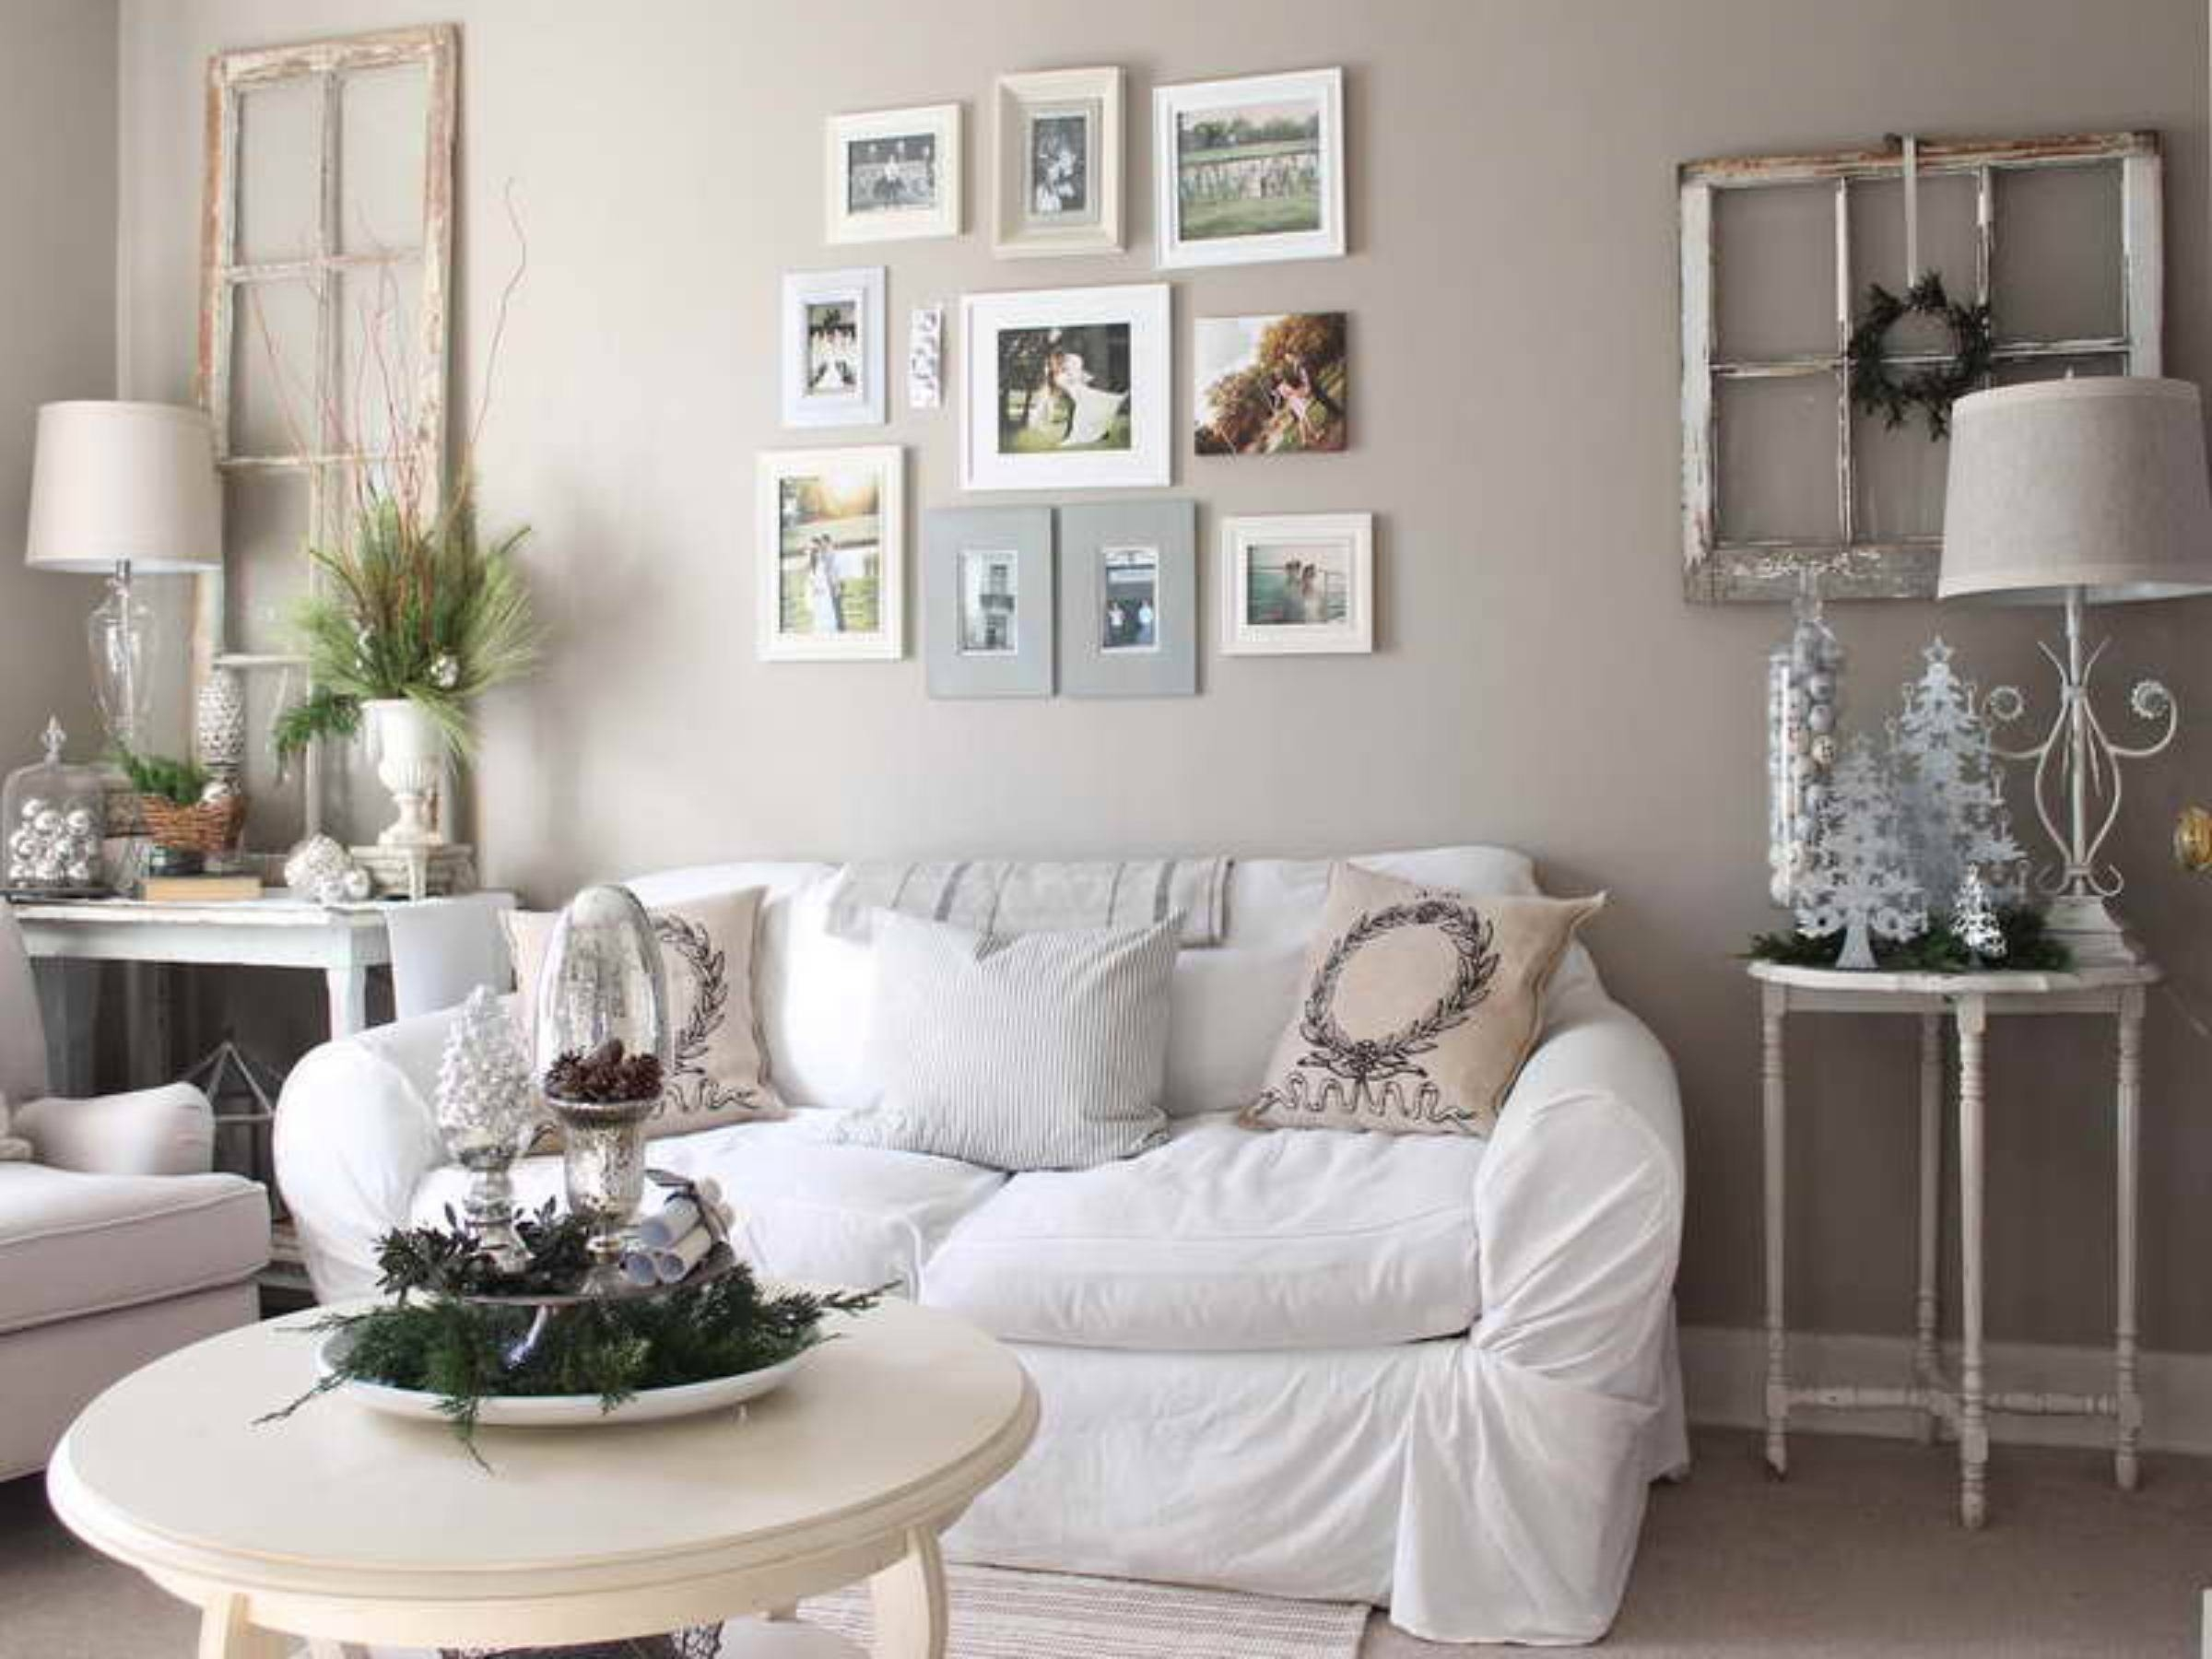 Big Wall Decor Ideas Gencongresscom Decorating For Large Walls For Current Wall Art For Large Walls (View 12 of 20)